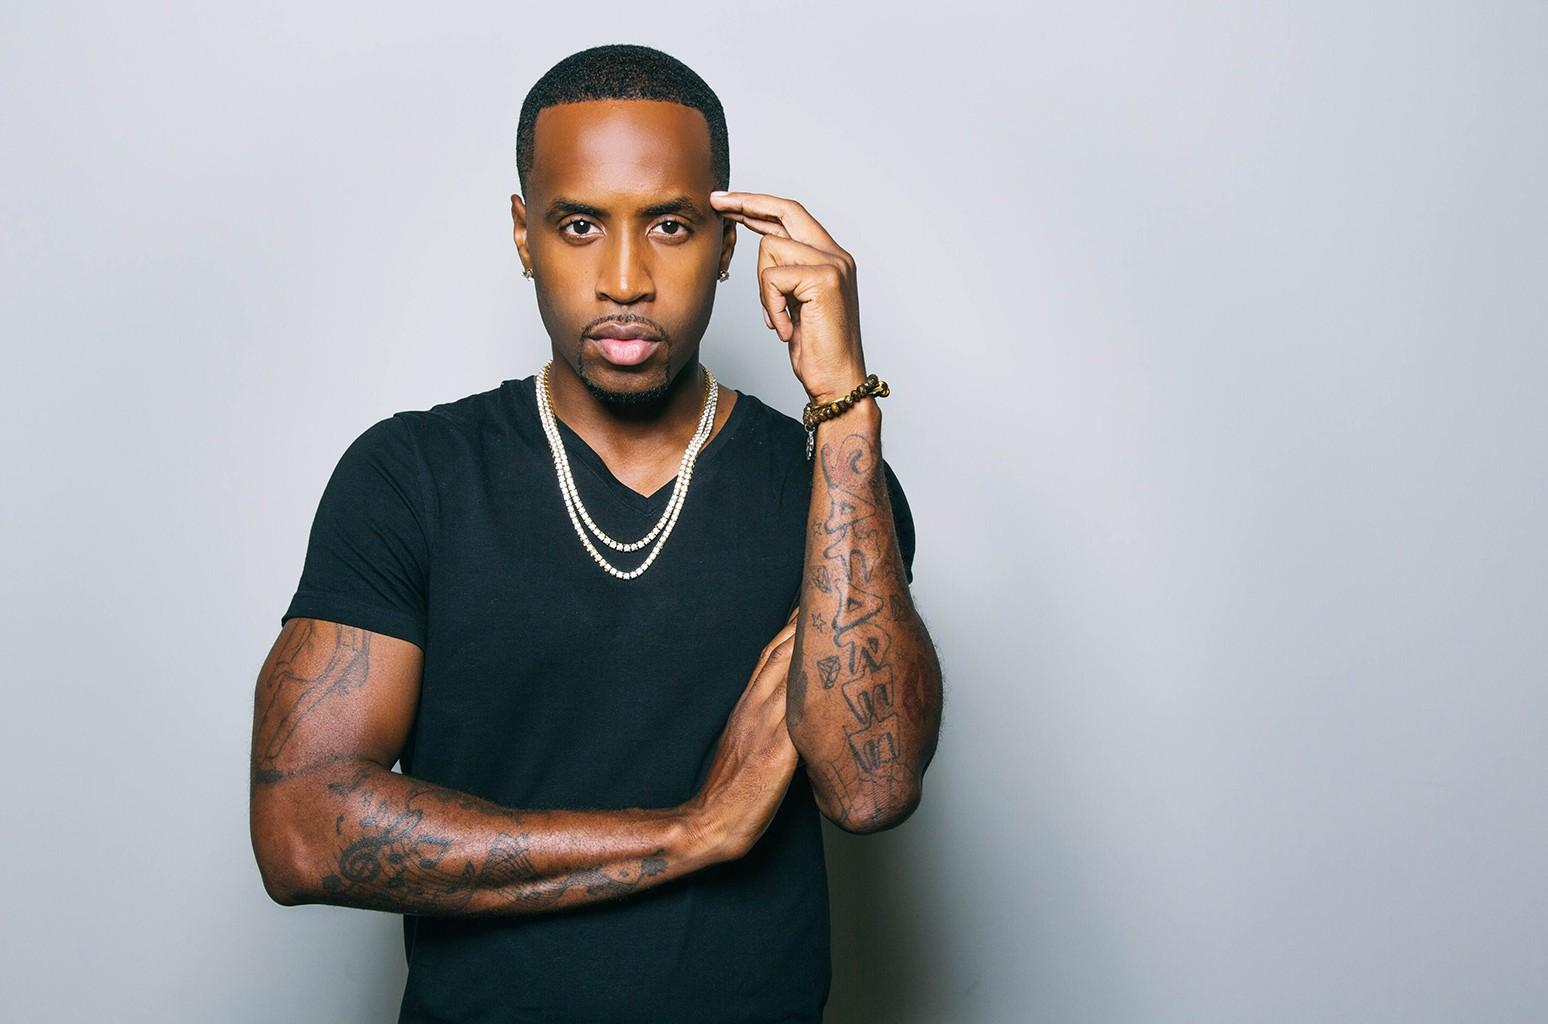 Safaree Has An Important Message For His Fans - Check Out What He's Asking Them